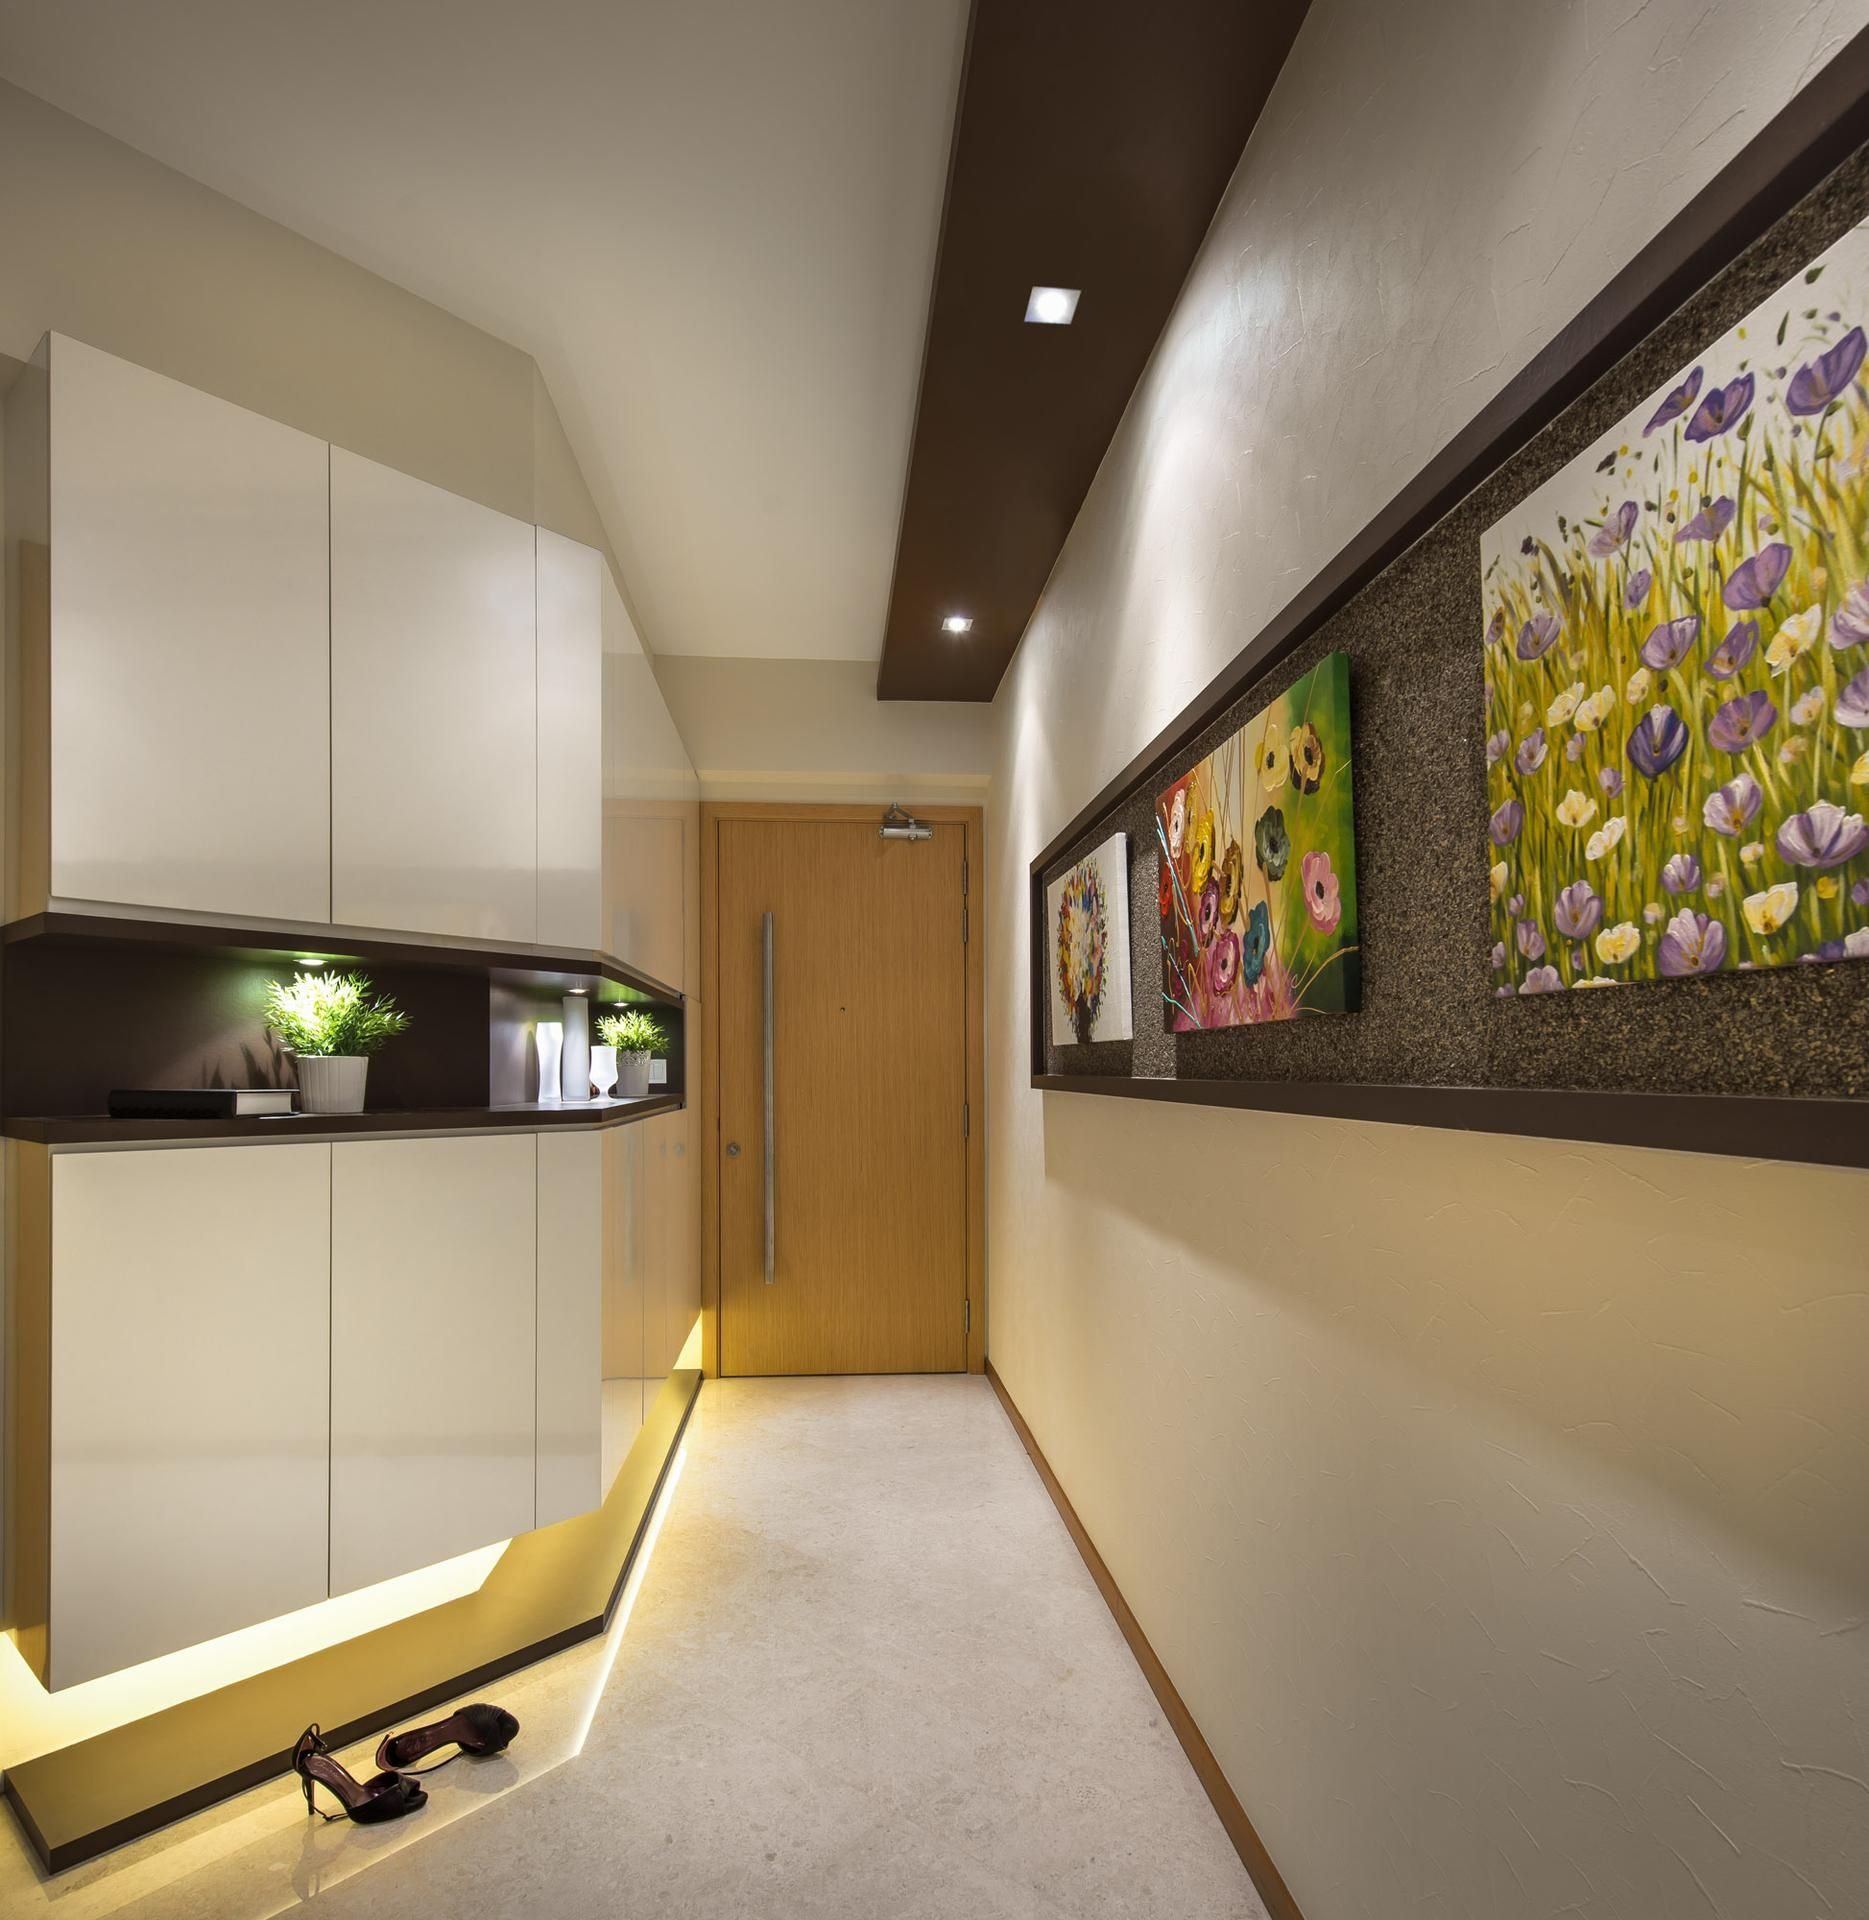 Clover By The Park Qanvast Home Design Renovation Widescreen Interior Ideas For Androids Hd Pics